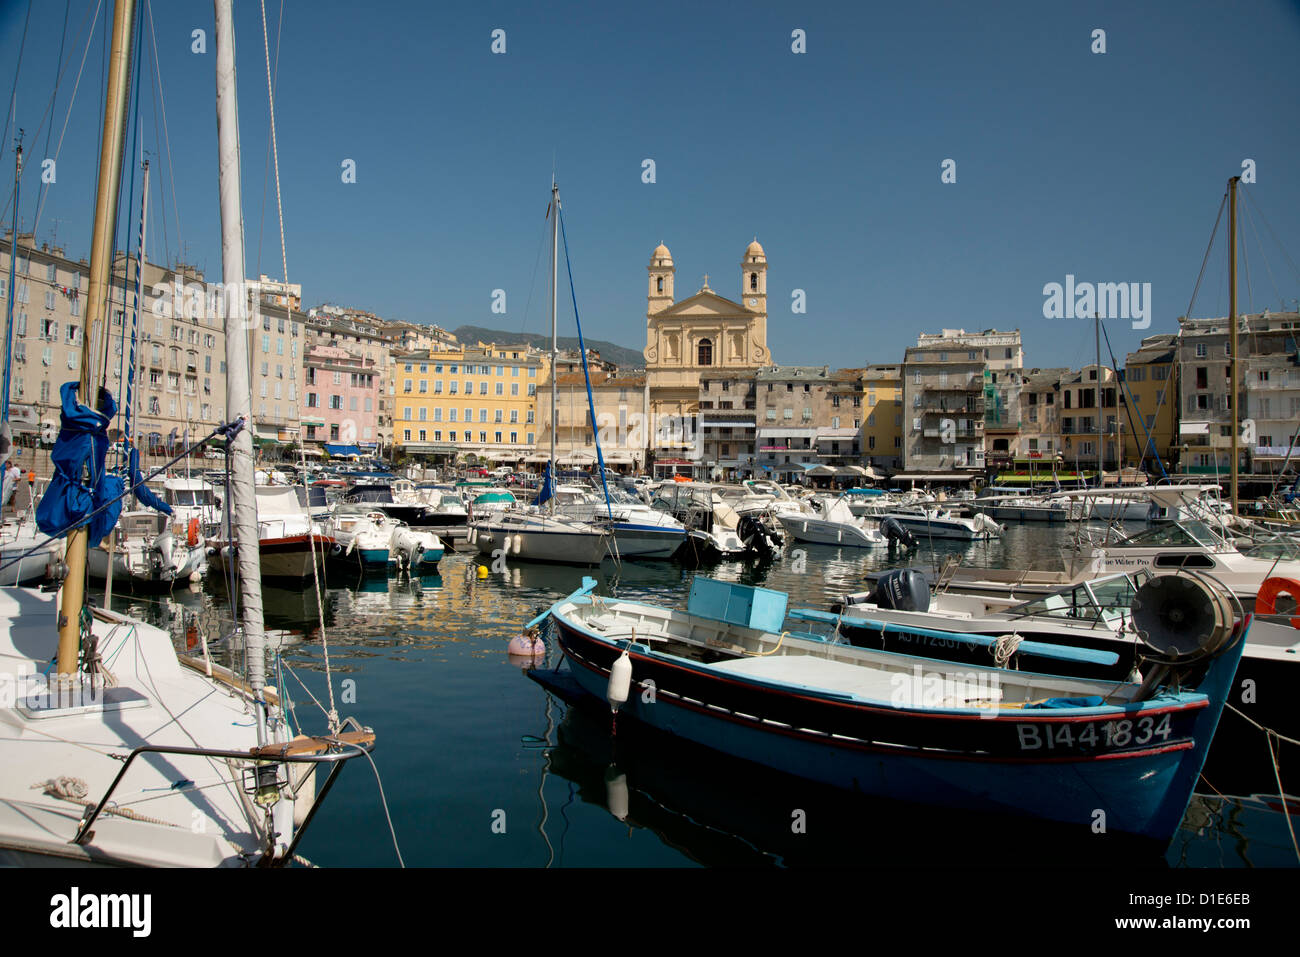 The old harbour in Bastia in northern Corsica, France, Mediterranean, Europe - Stock Image